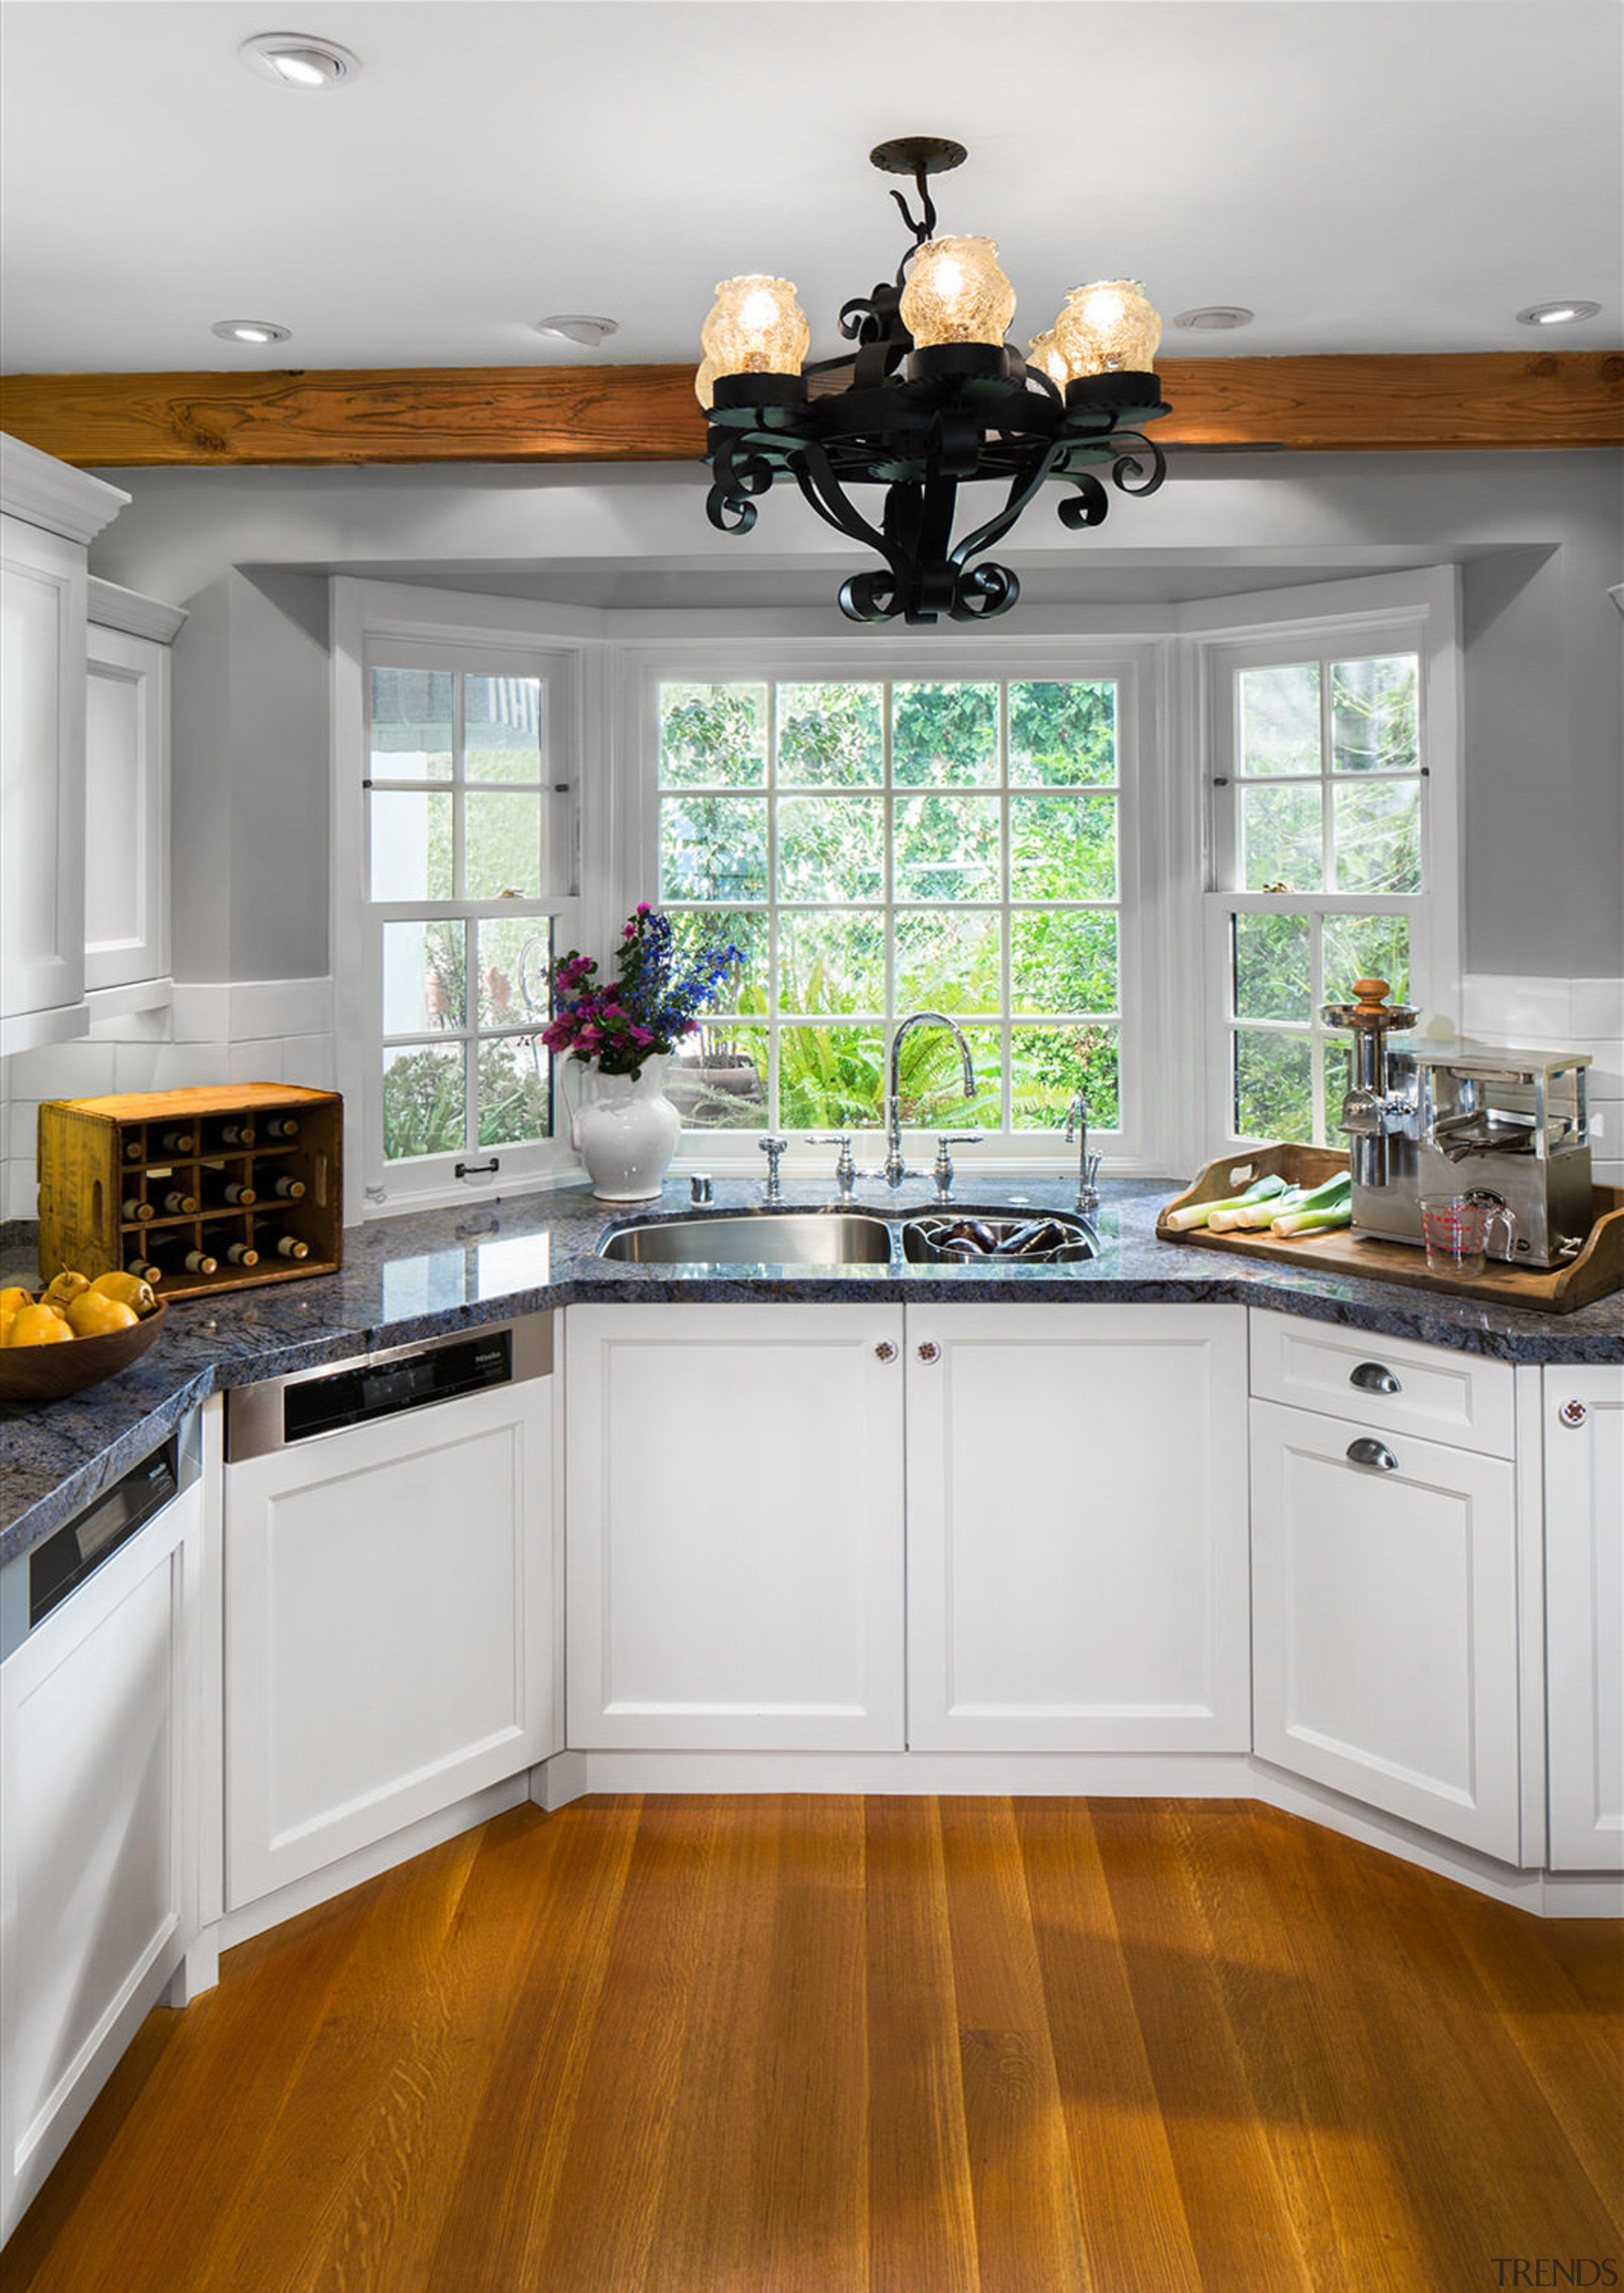 A Bay Window At One End Of This Cabinetry Countertop Cuisine Classique Interior Design Kitchen Ro Kitchen Remodel Small Kitchen Renovation Kitchen Remodel